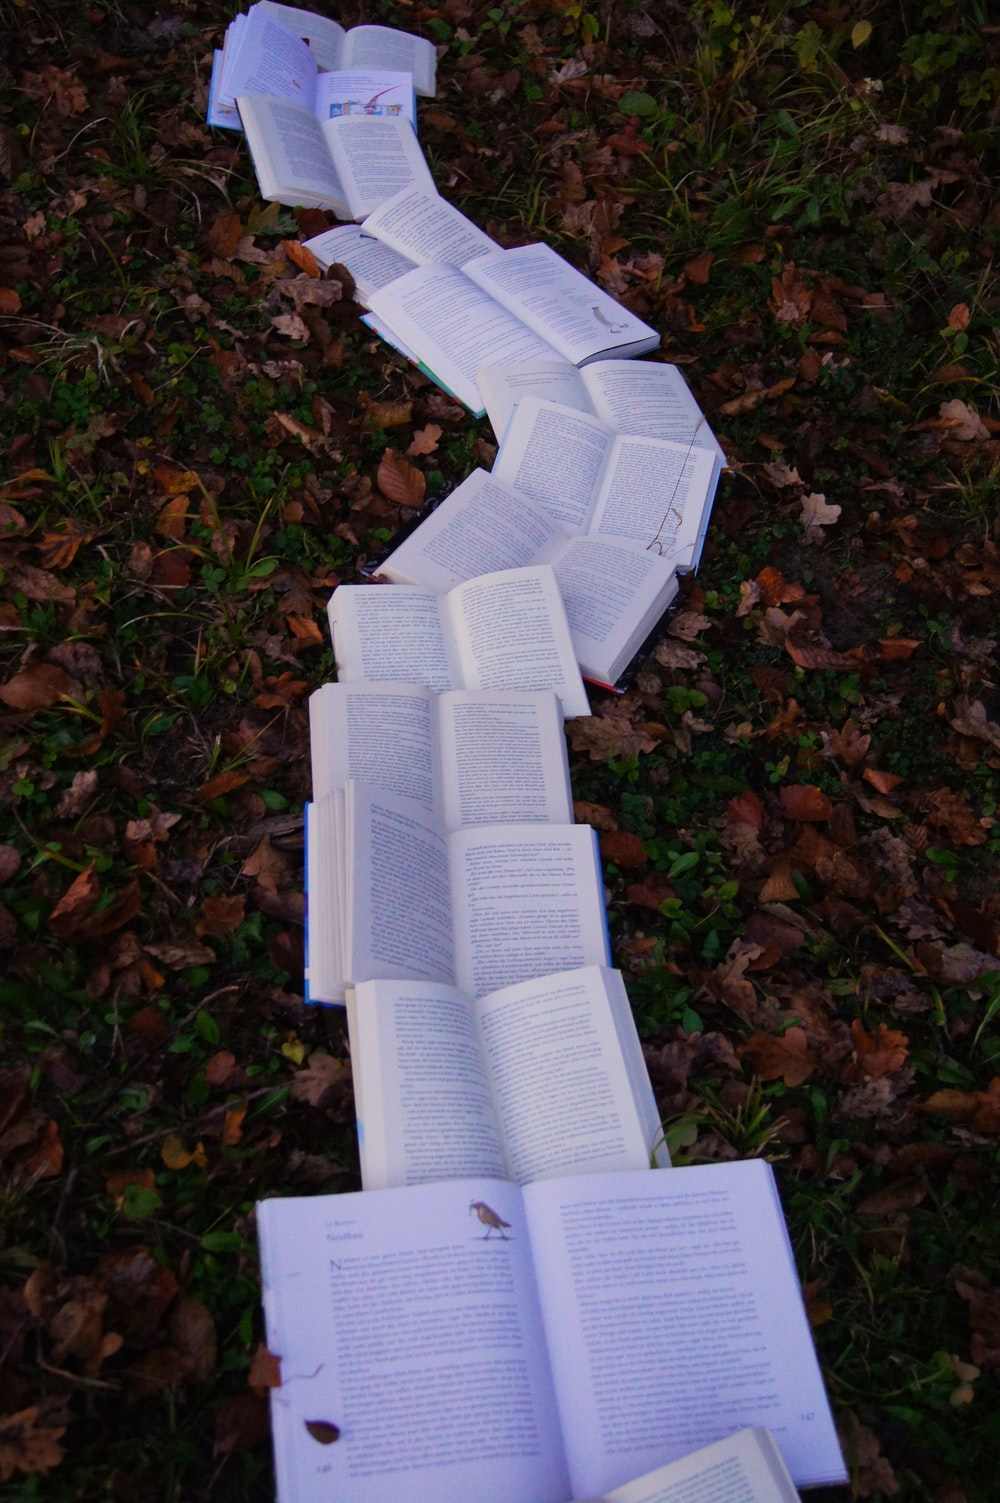 books on ground